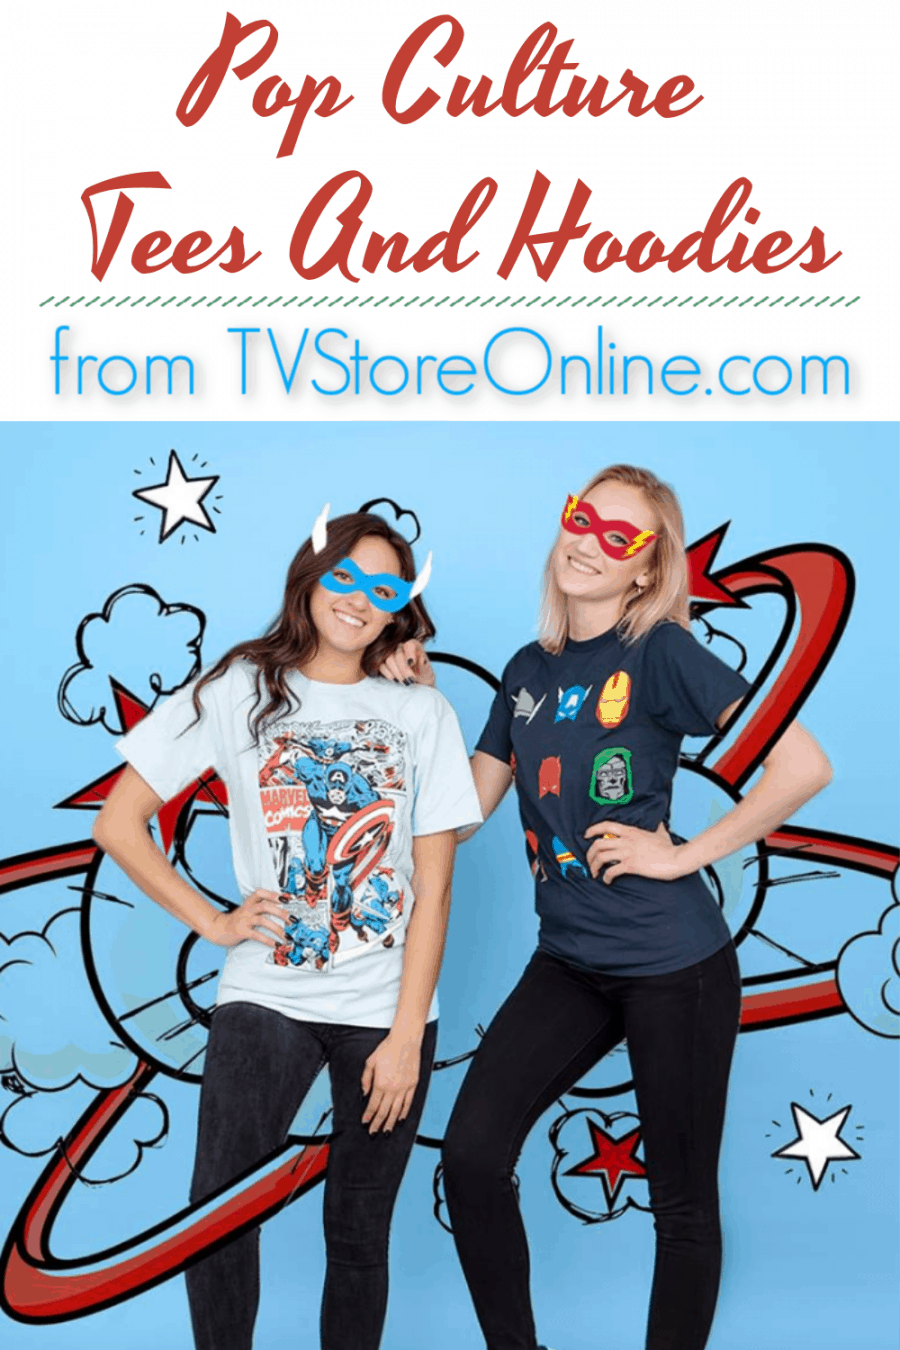 TVStoreOnline.com Pop Culture Tees And Hoodies {Perfect For Back To School}